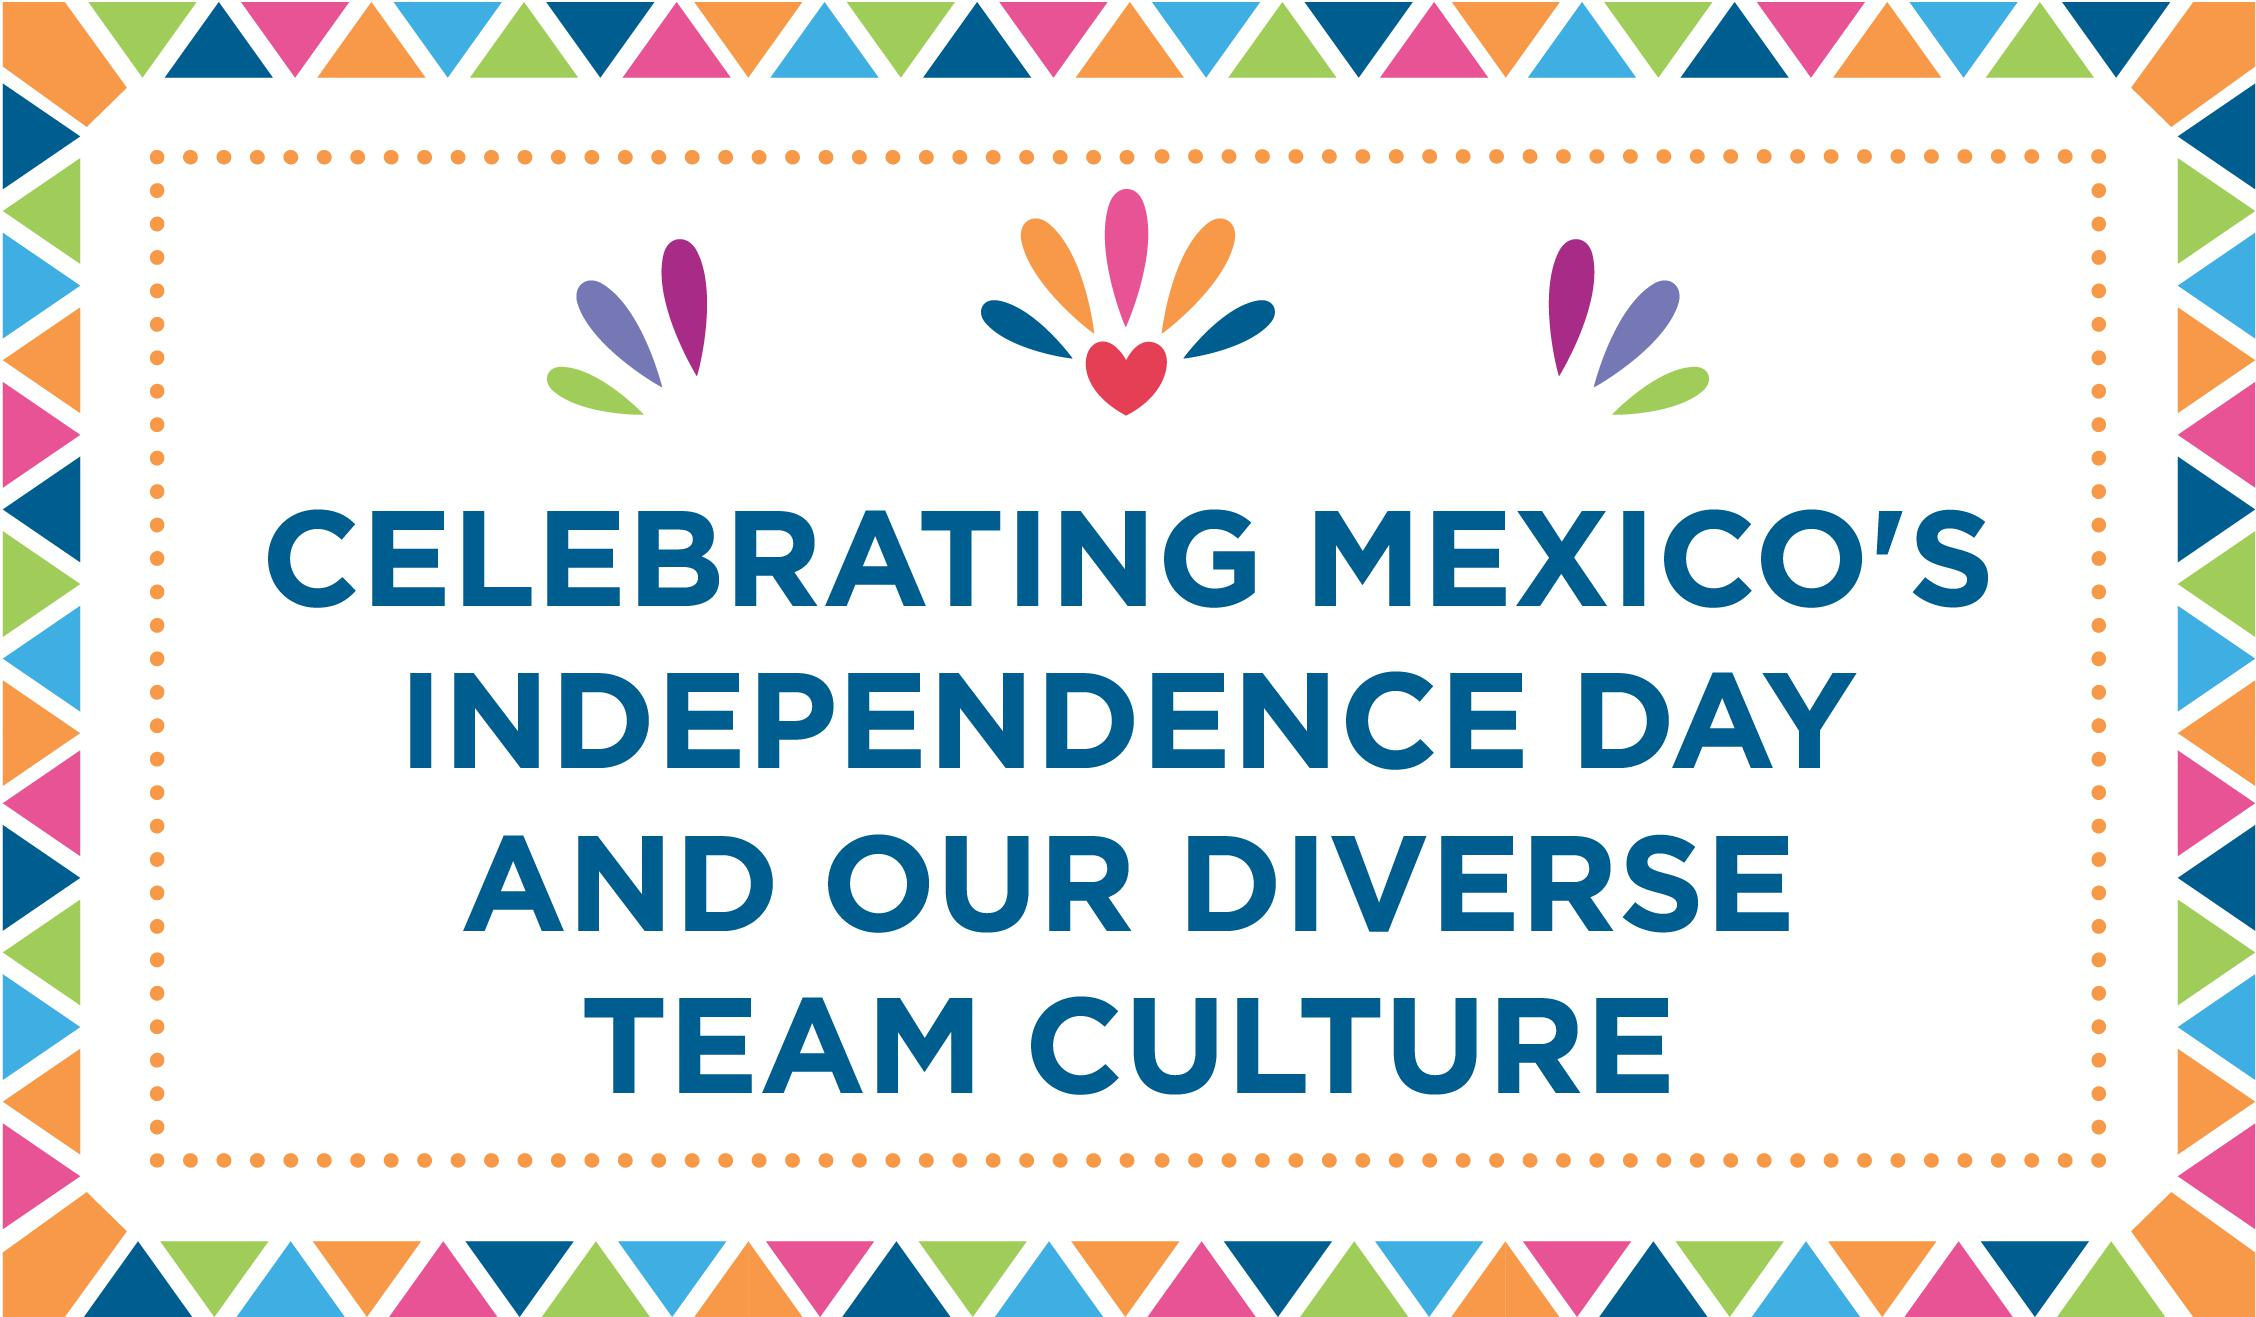 Celebrating Mexico's Independence Day and Our Diverse Team Culture